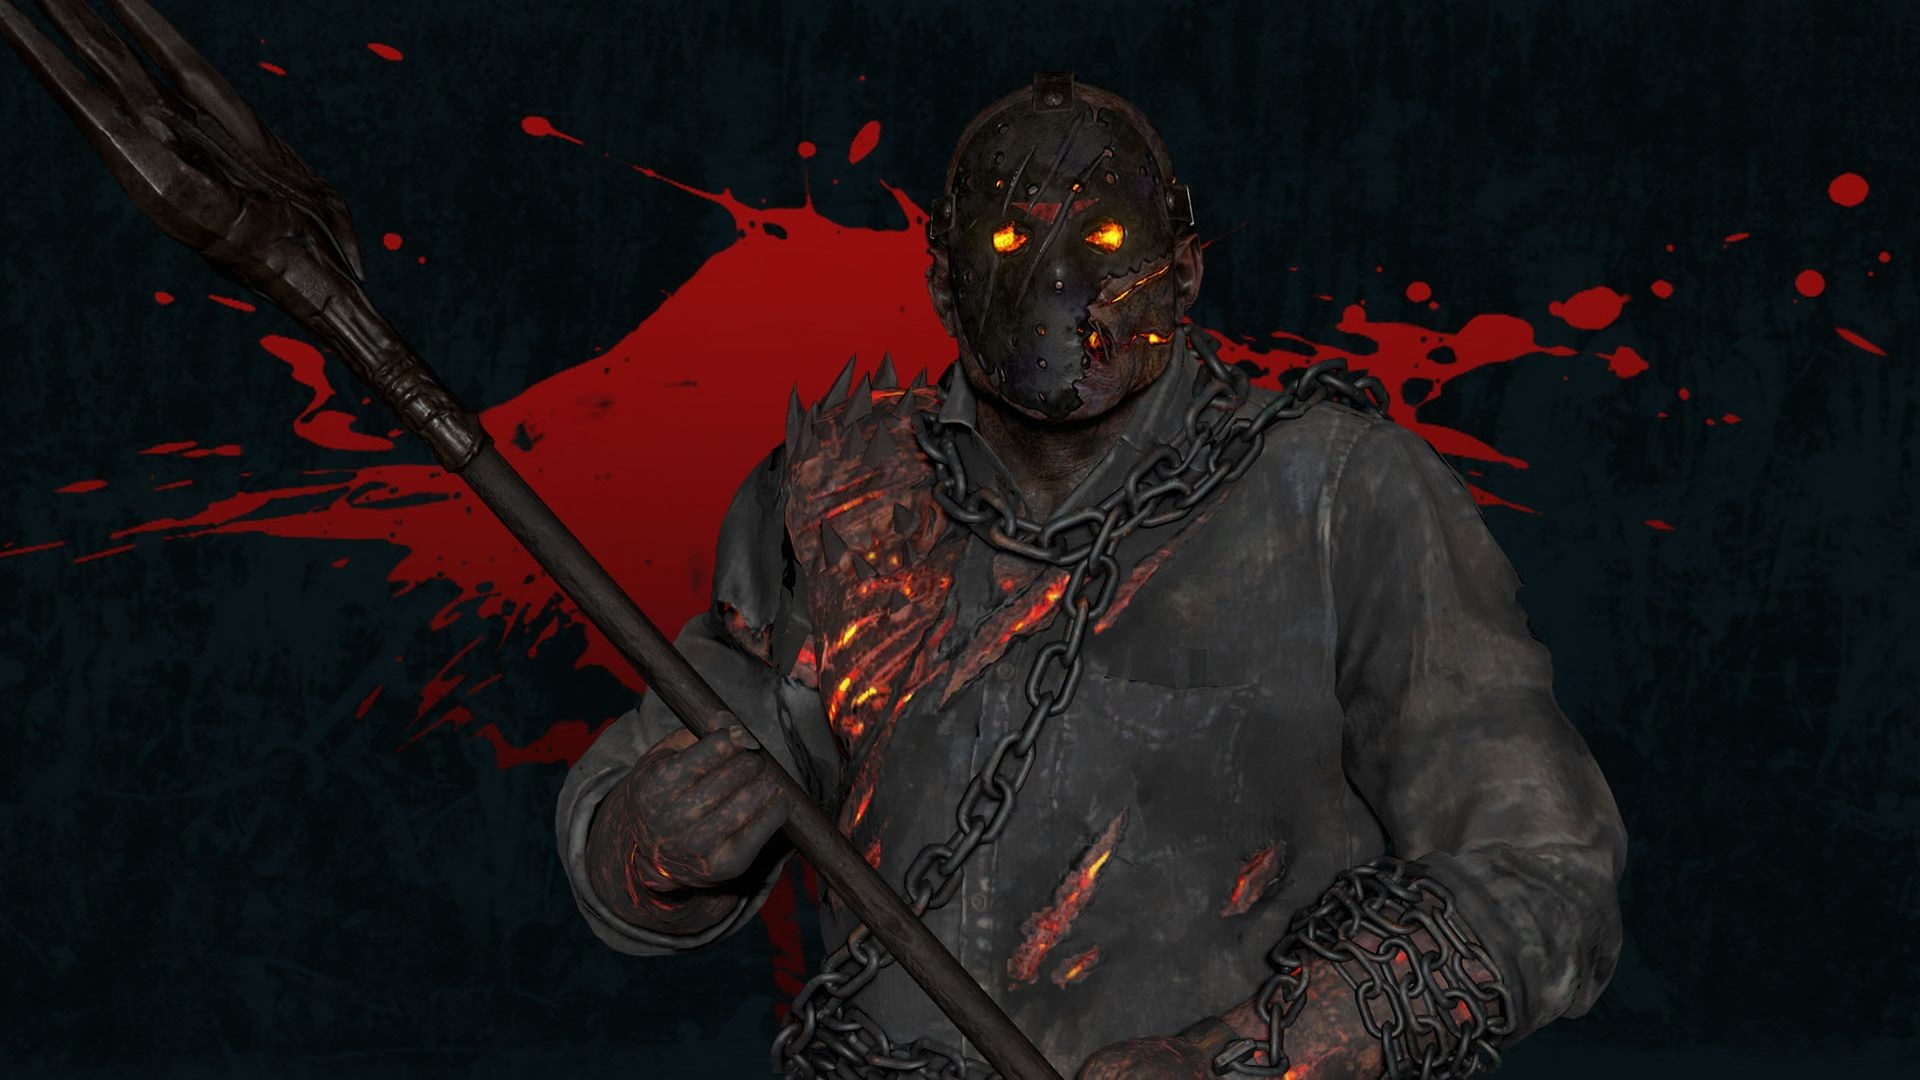 1920x1080 Friday the 13th: The Game HD Wallpaper | Background Image |  |  ID:862361 - Wallpaper Abyss